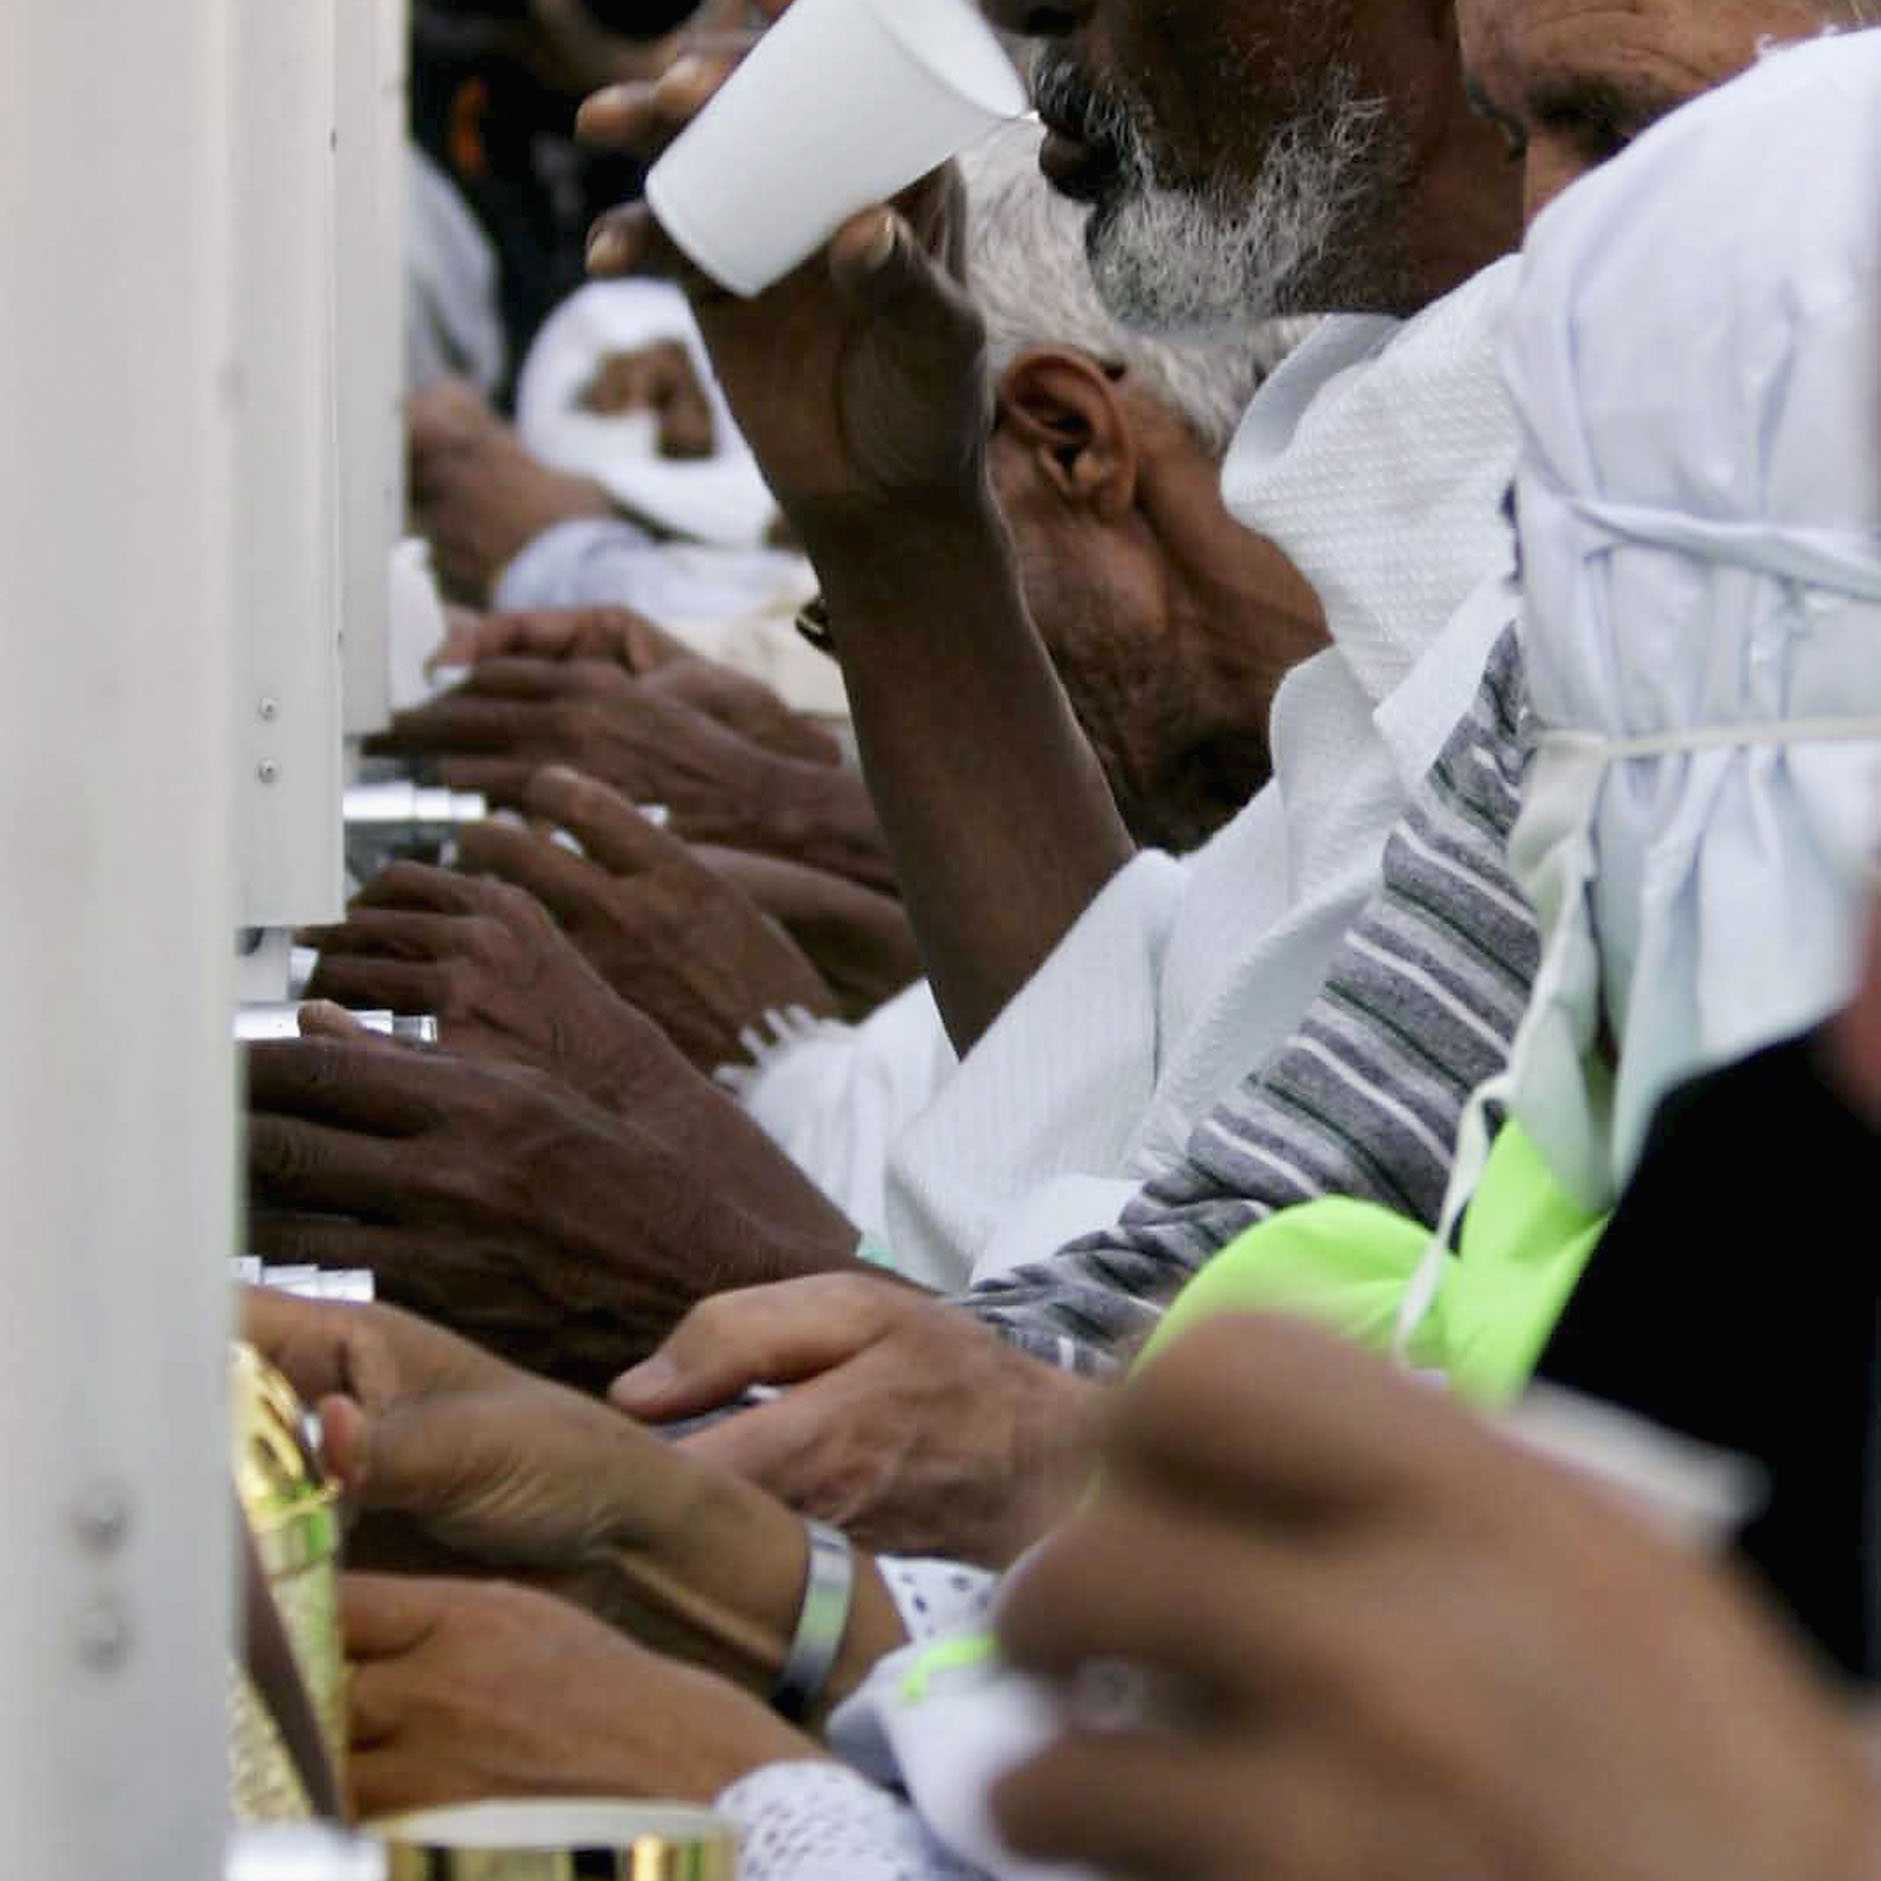 Muslim pilgrims drink water from the Zamzam well the source of which comes from under the great mosque